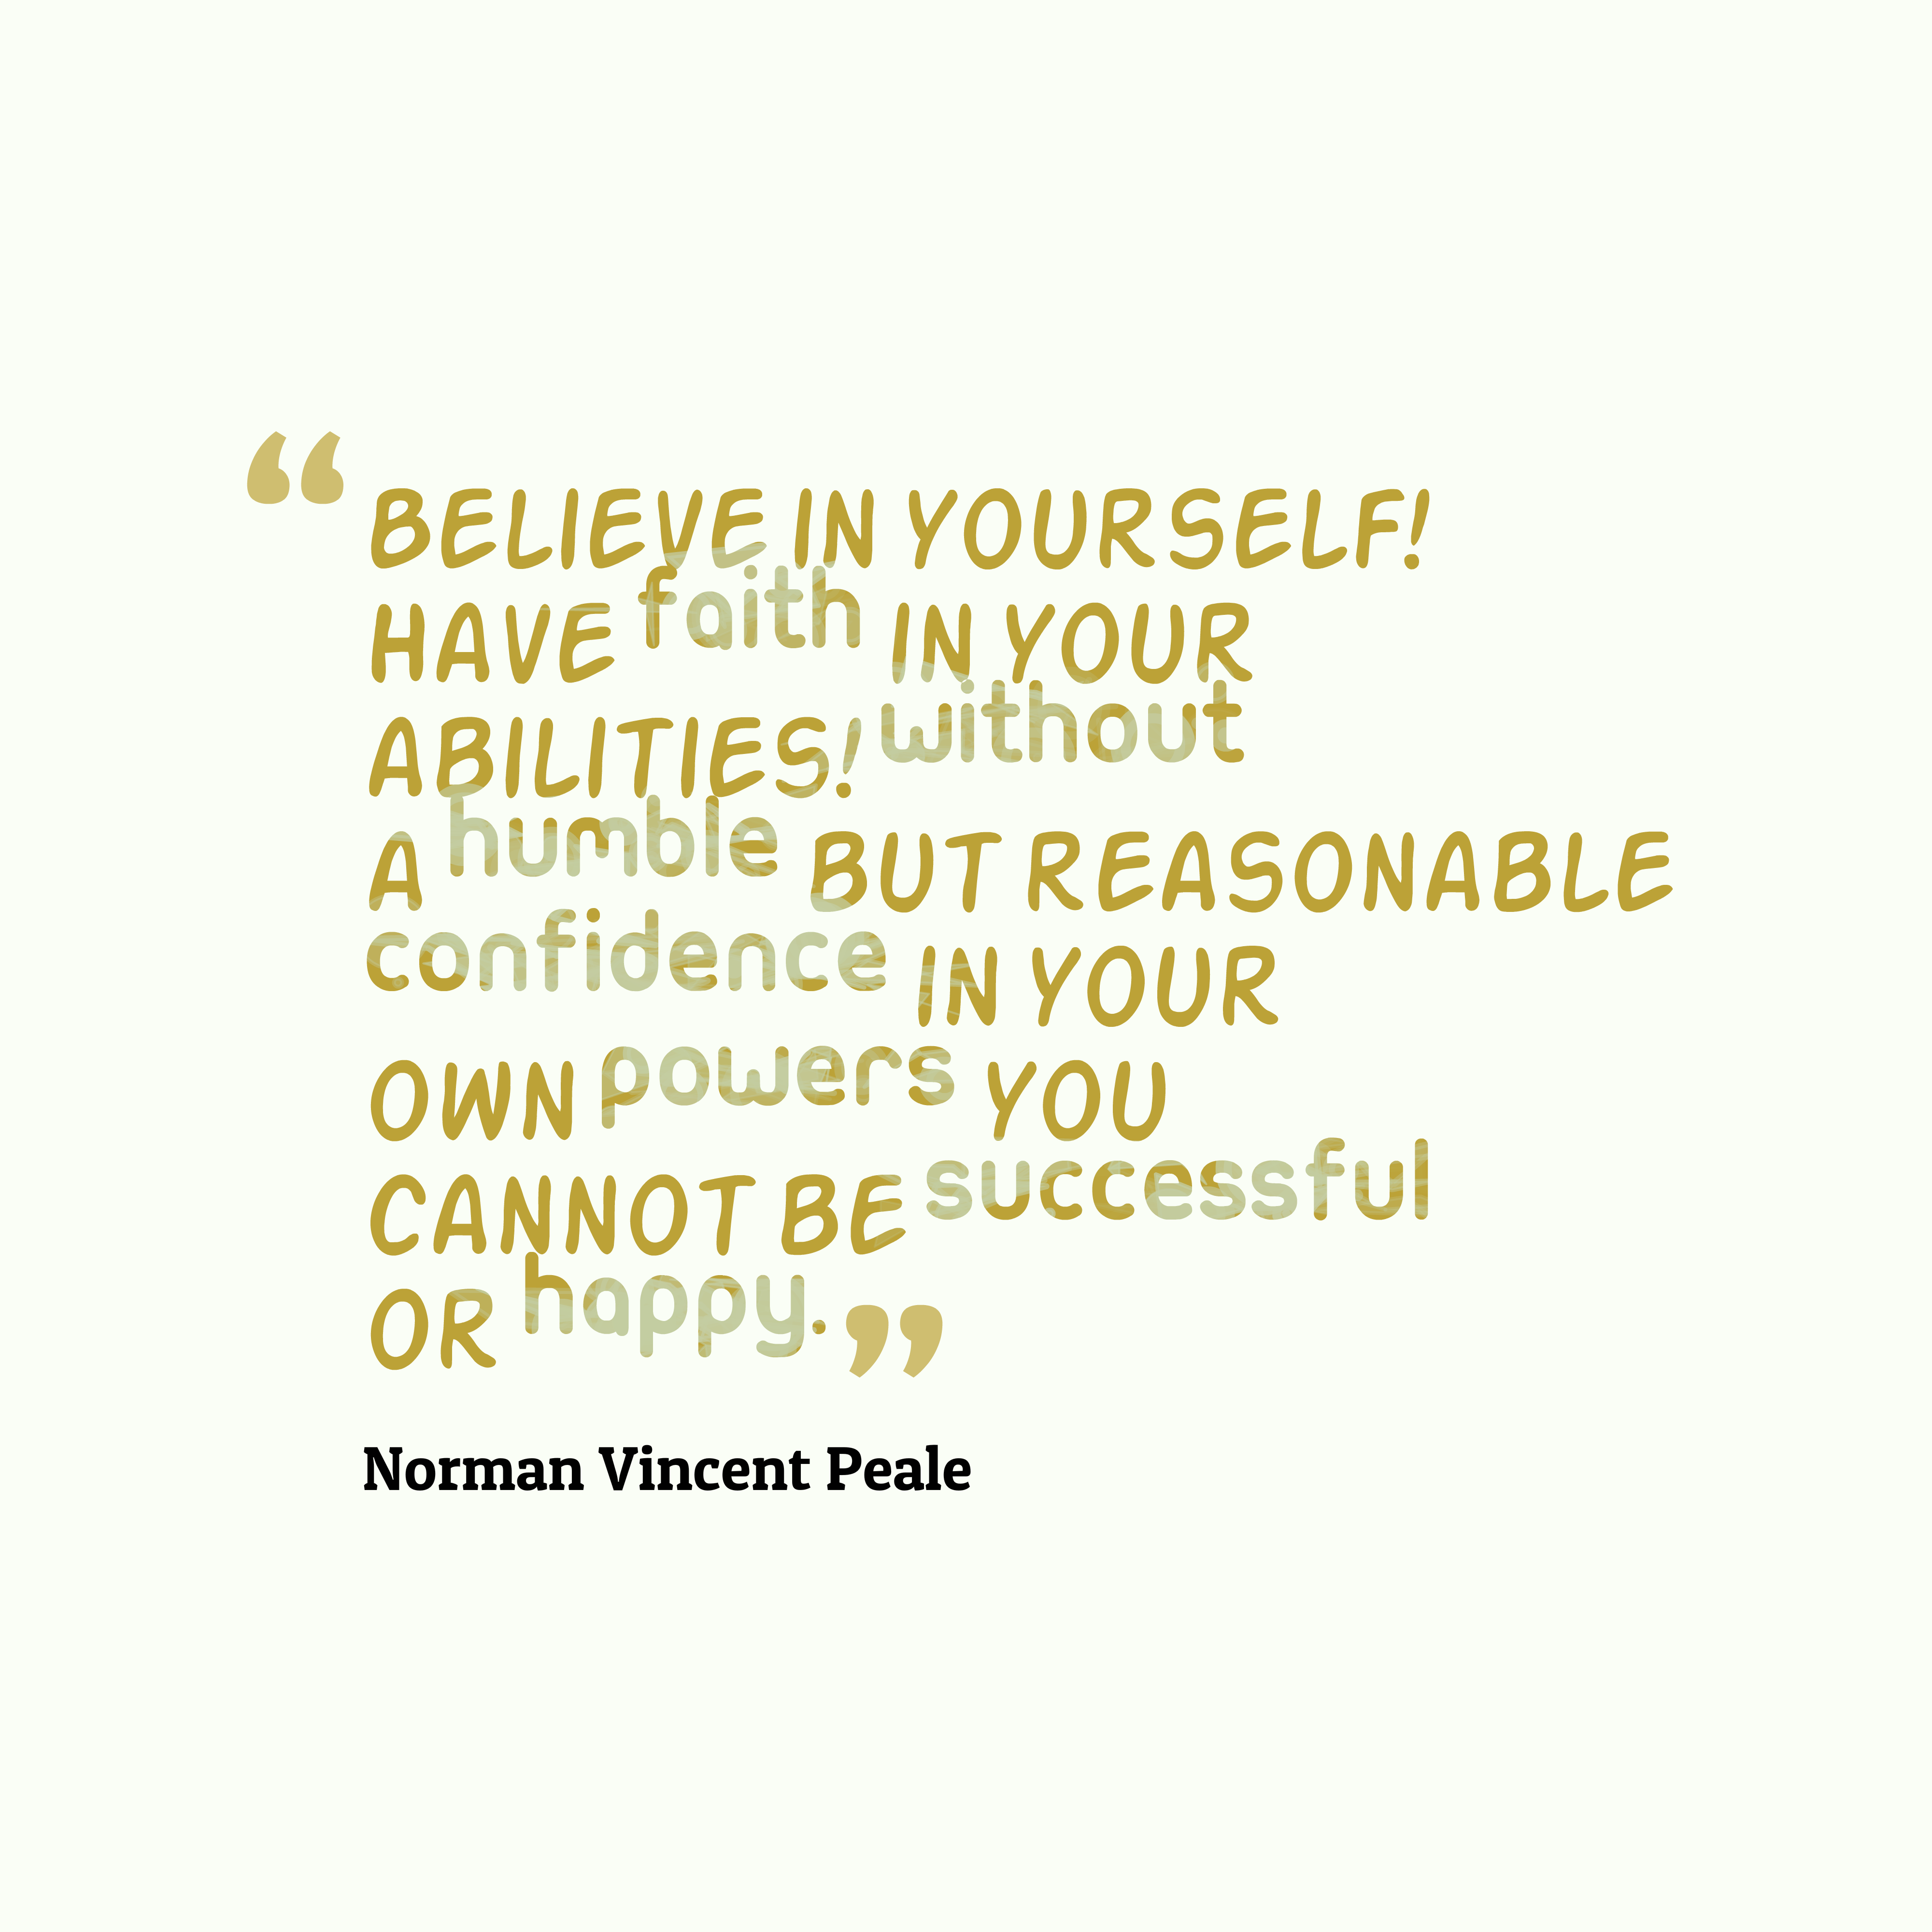 Norman Vincent Peale Quote About Faith